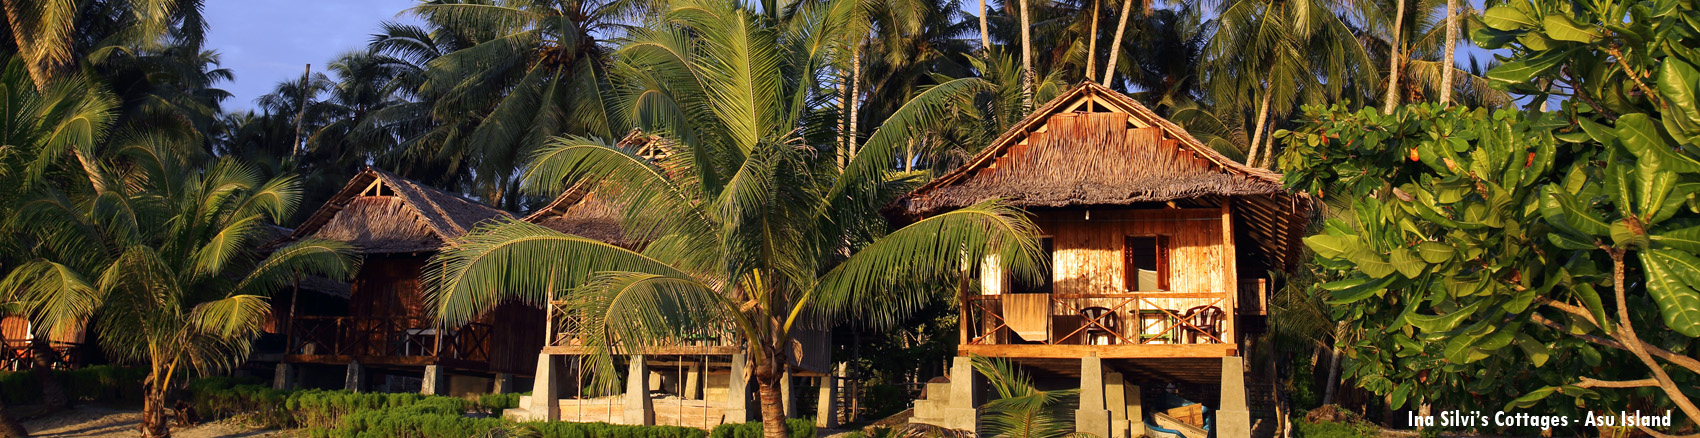 Ina silvi's cottages, Asu Island. Nias, Indonesia.